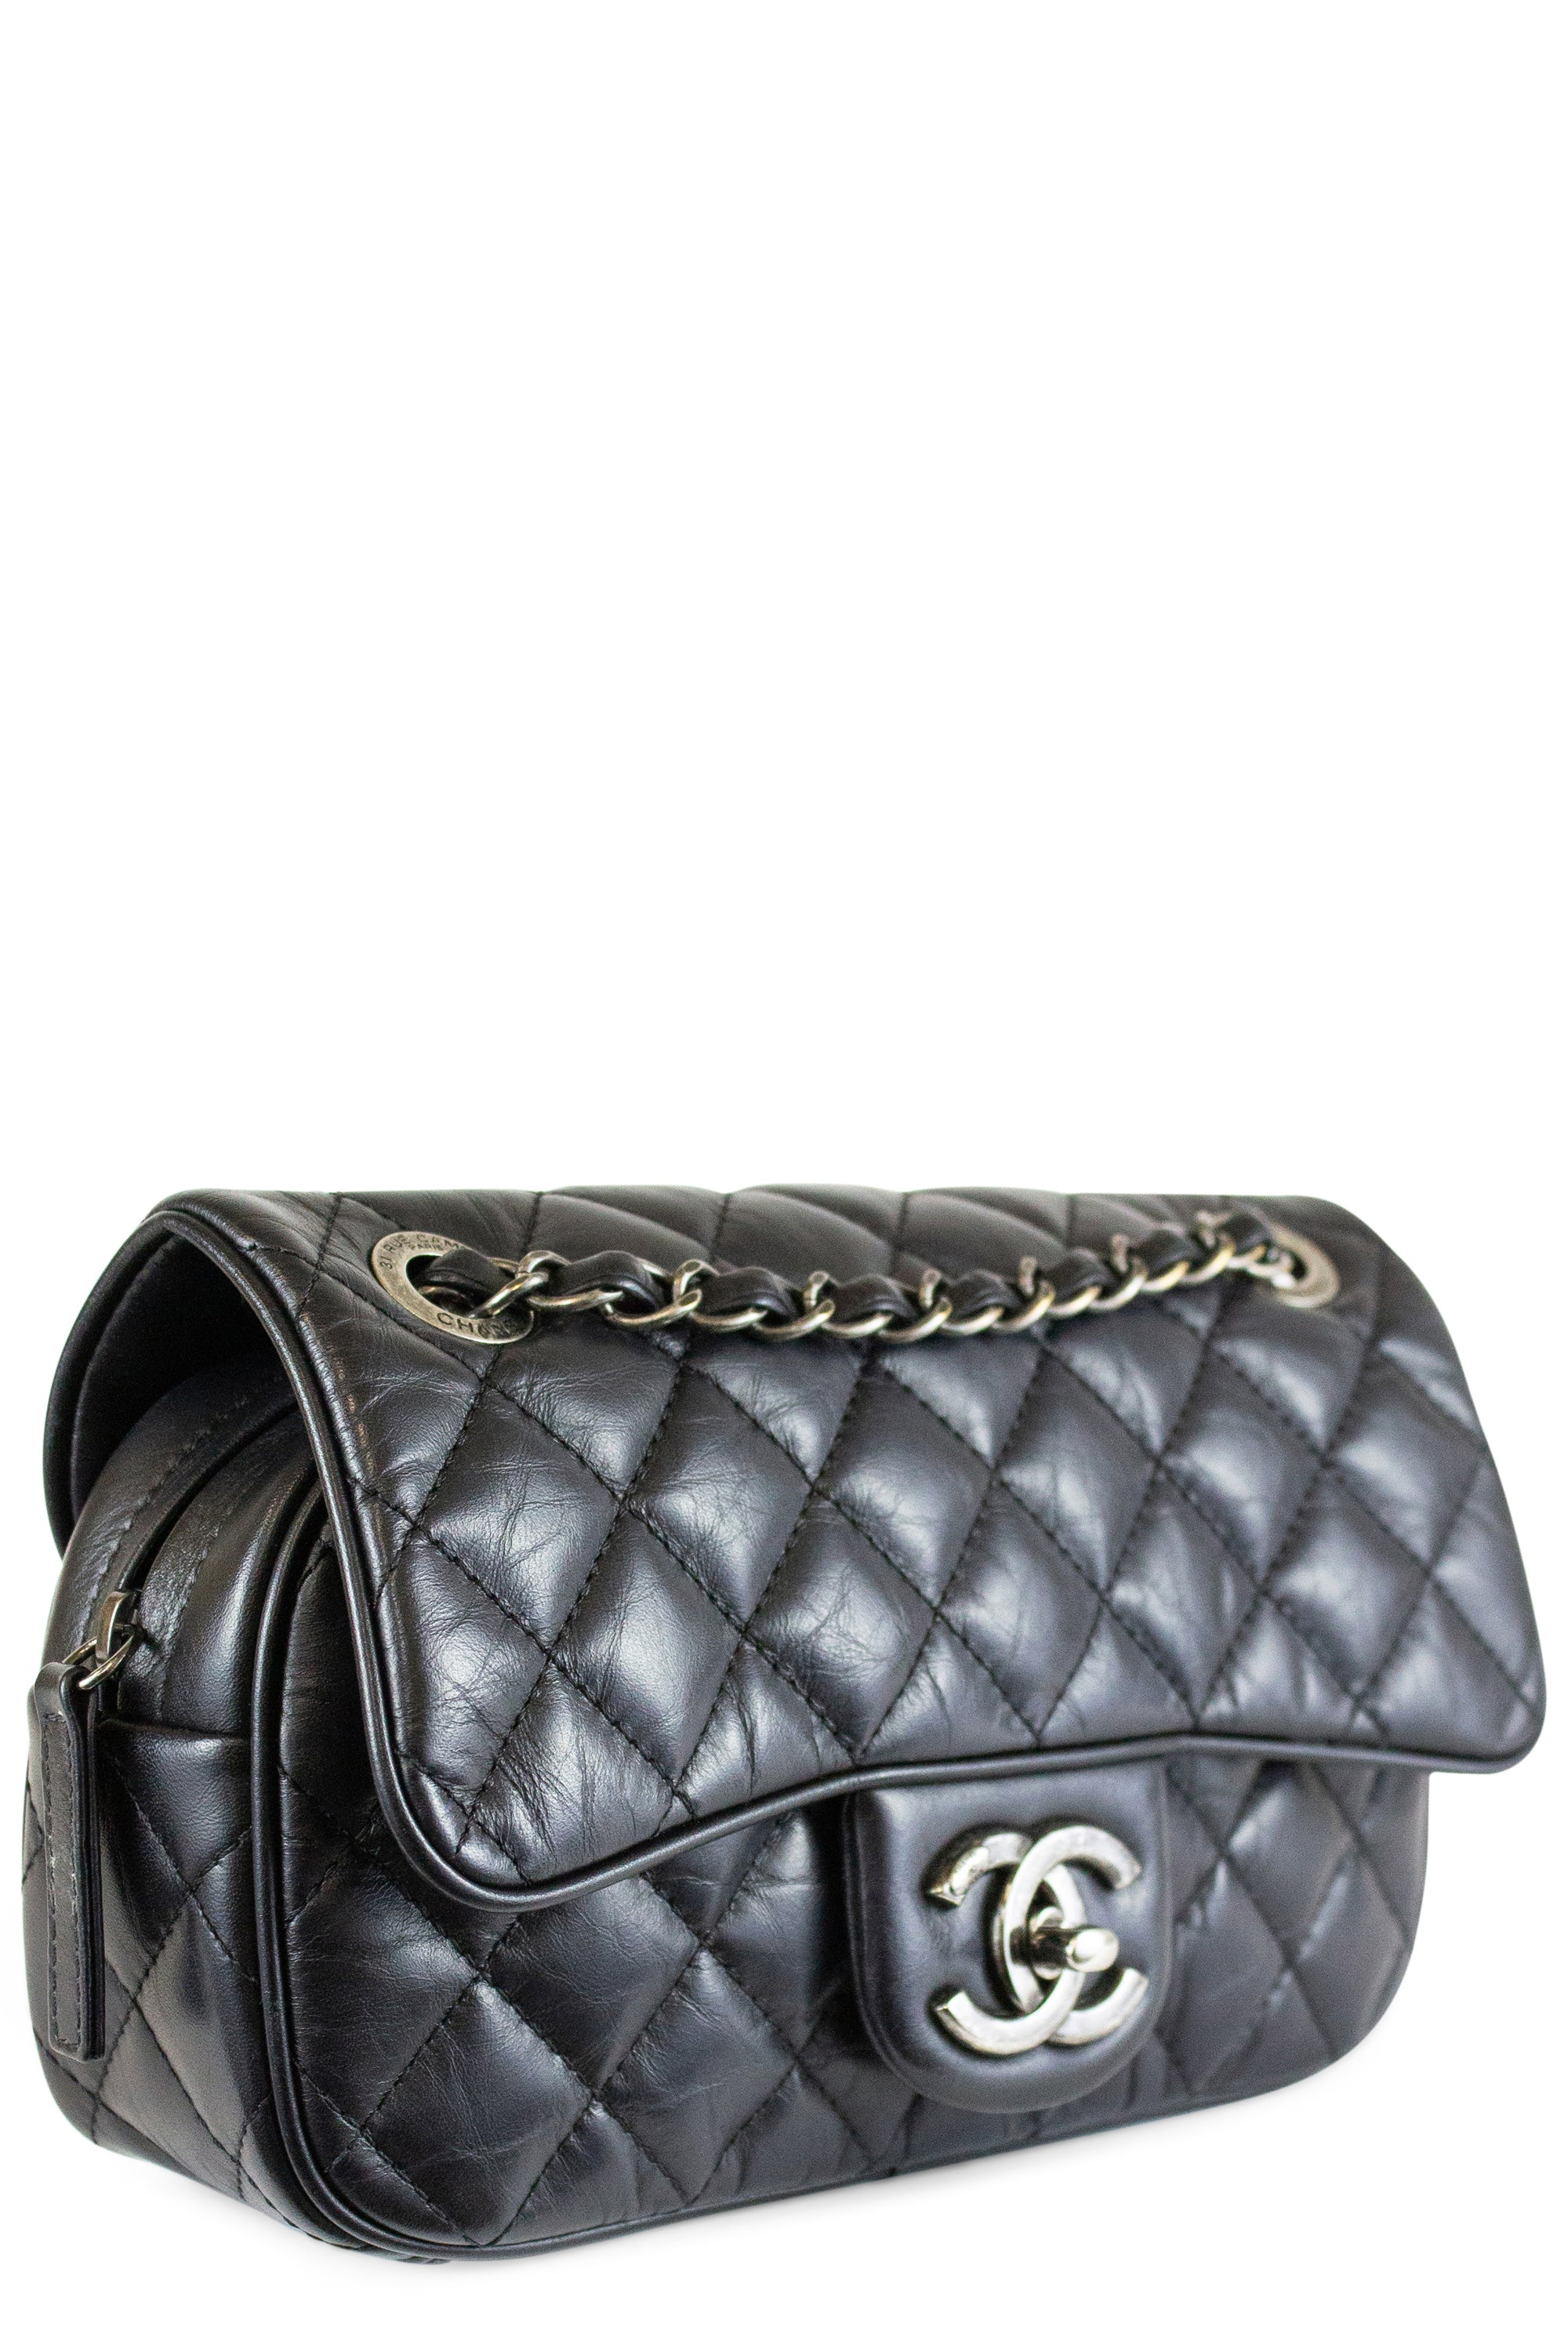 CHANEL Flap Bag Crossbody